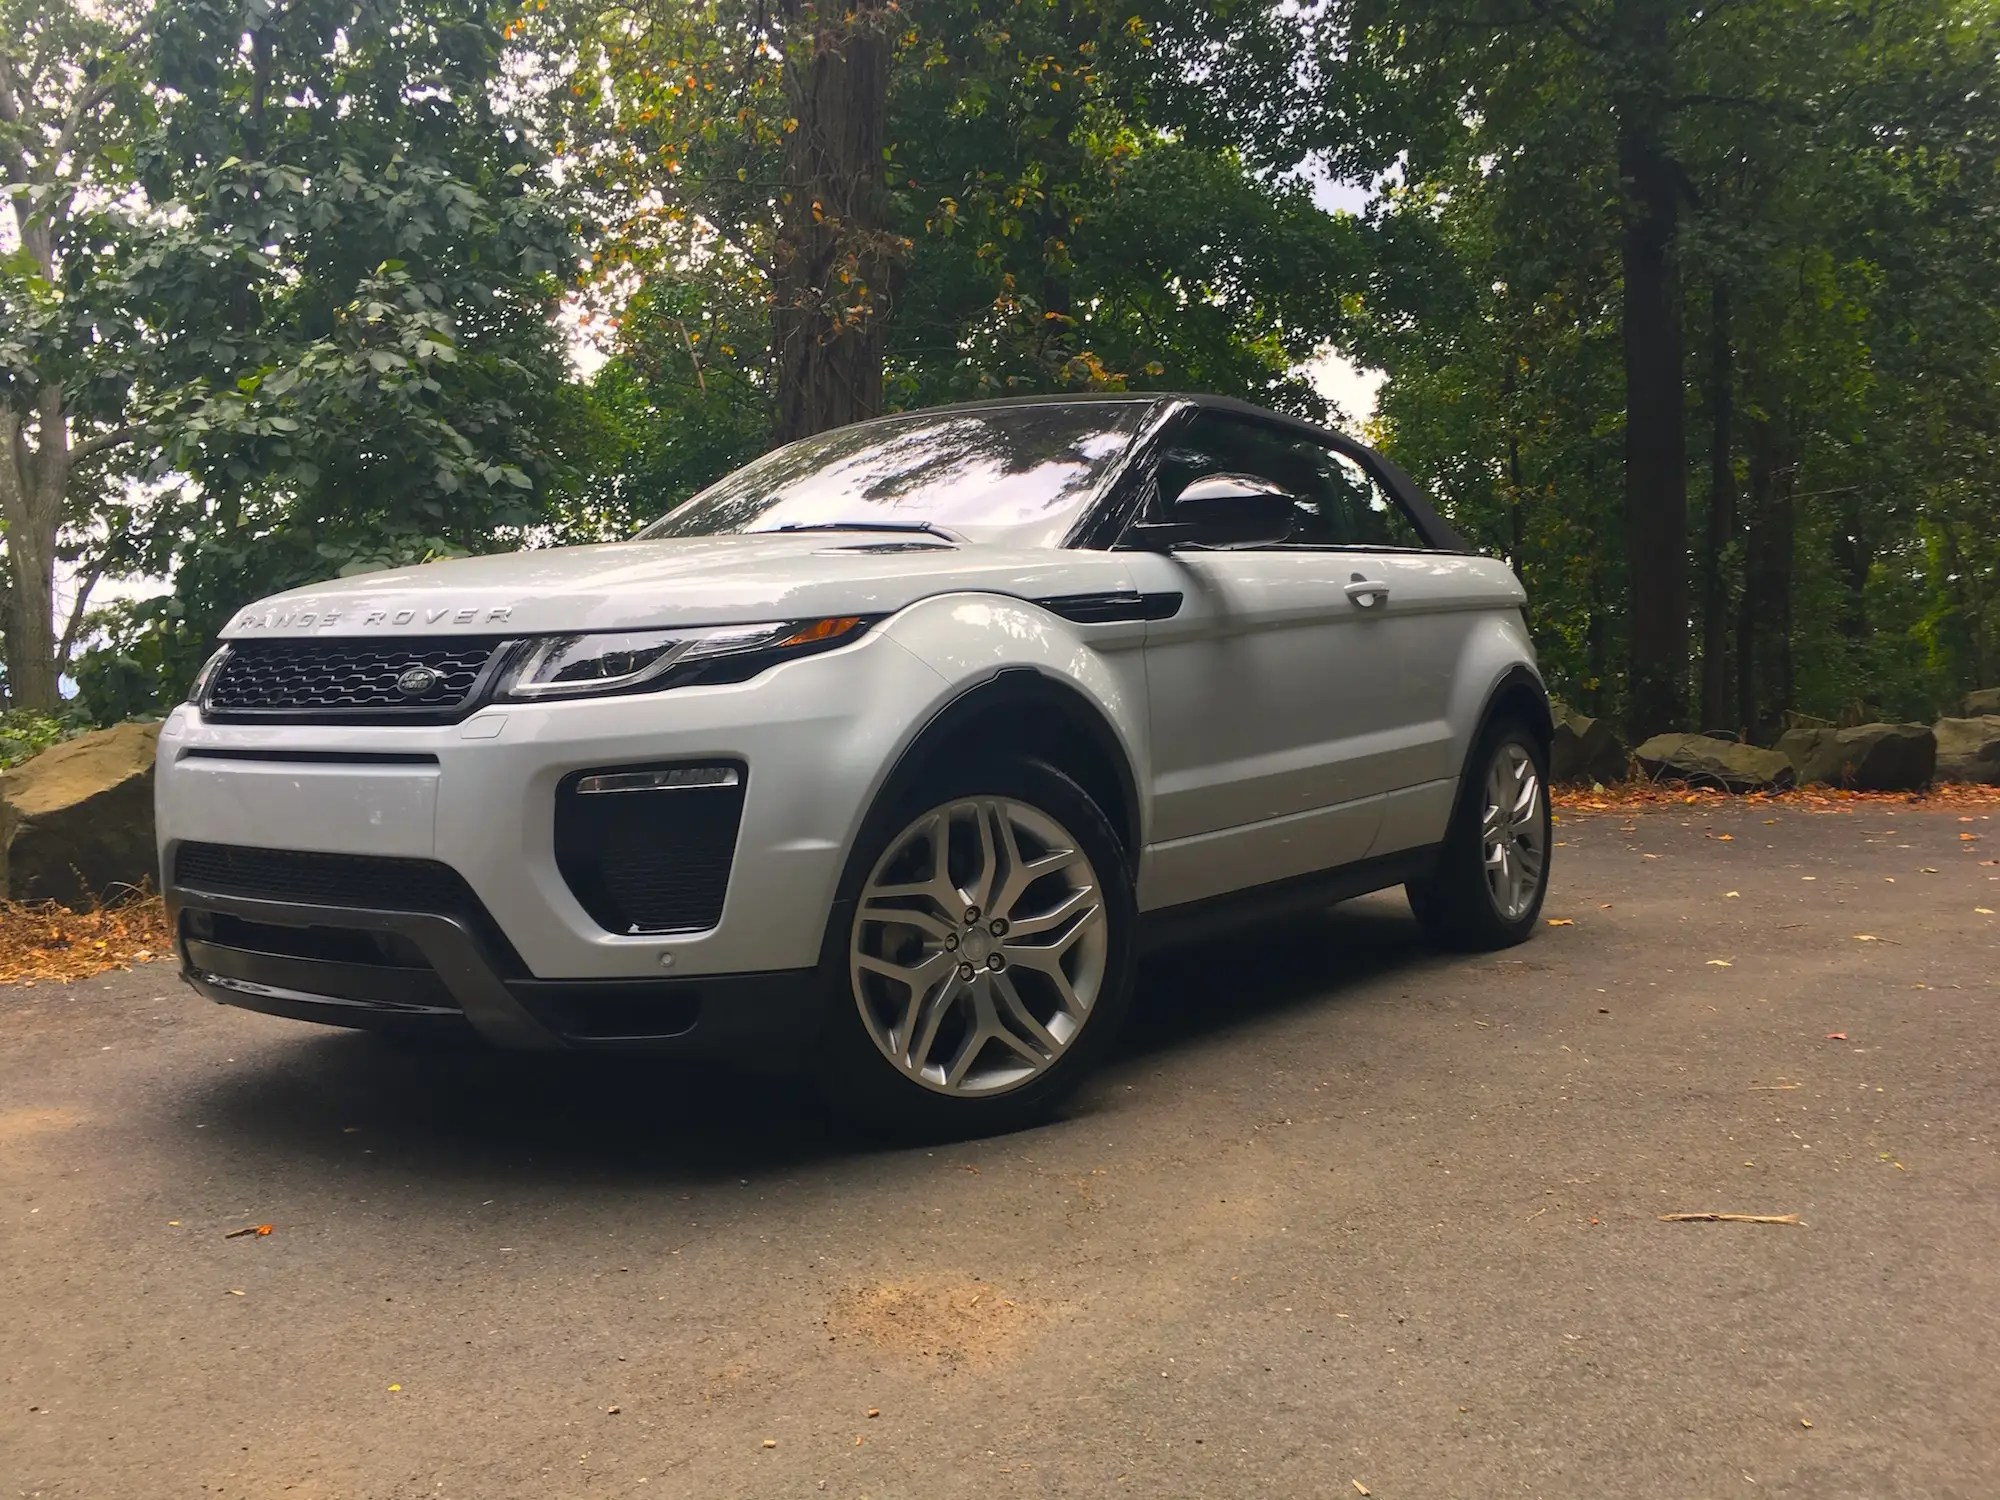 The Range Rover Evoque Convertible is a strange car with a lot of